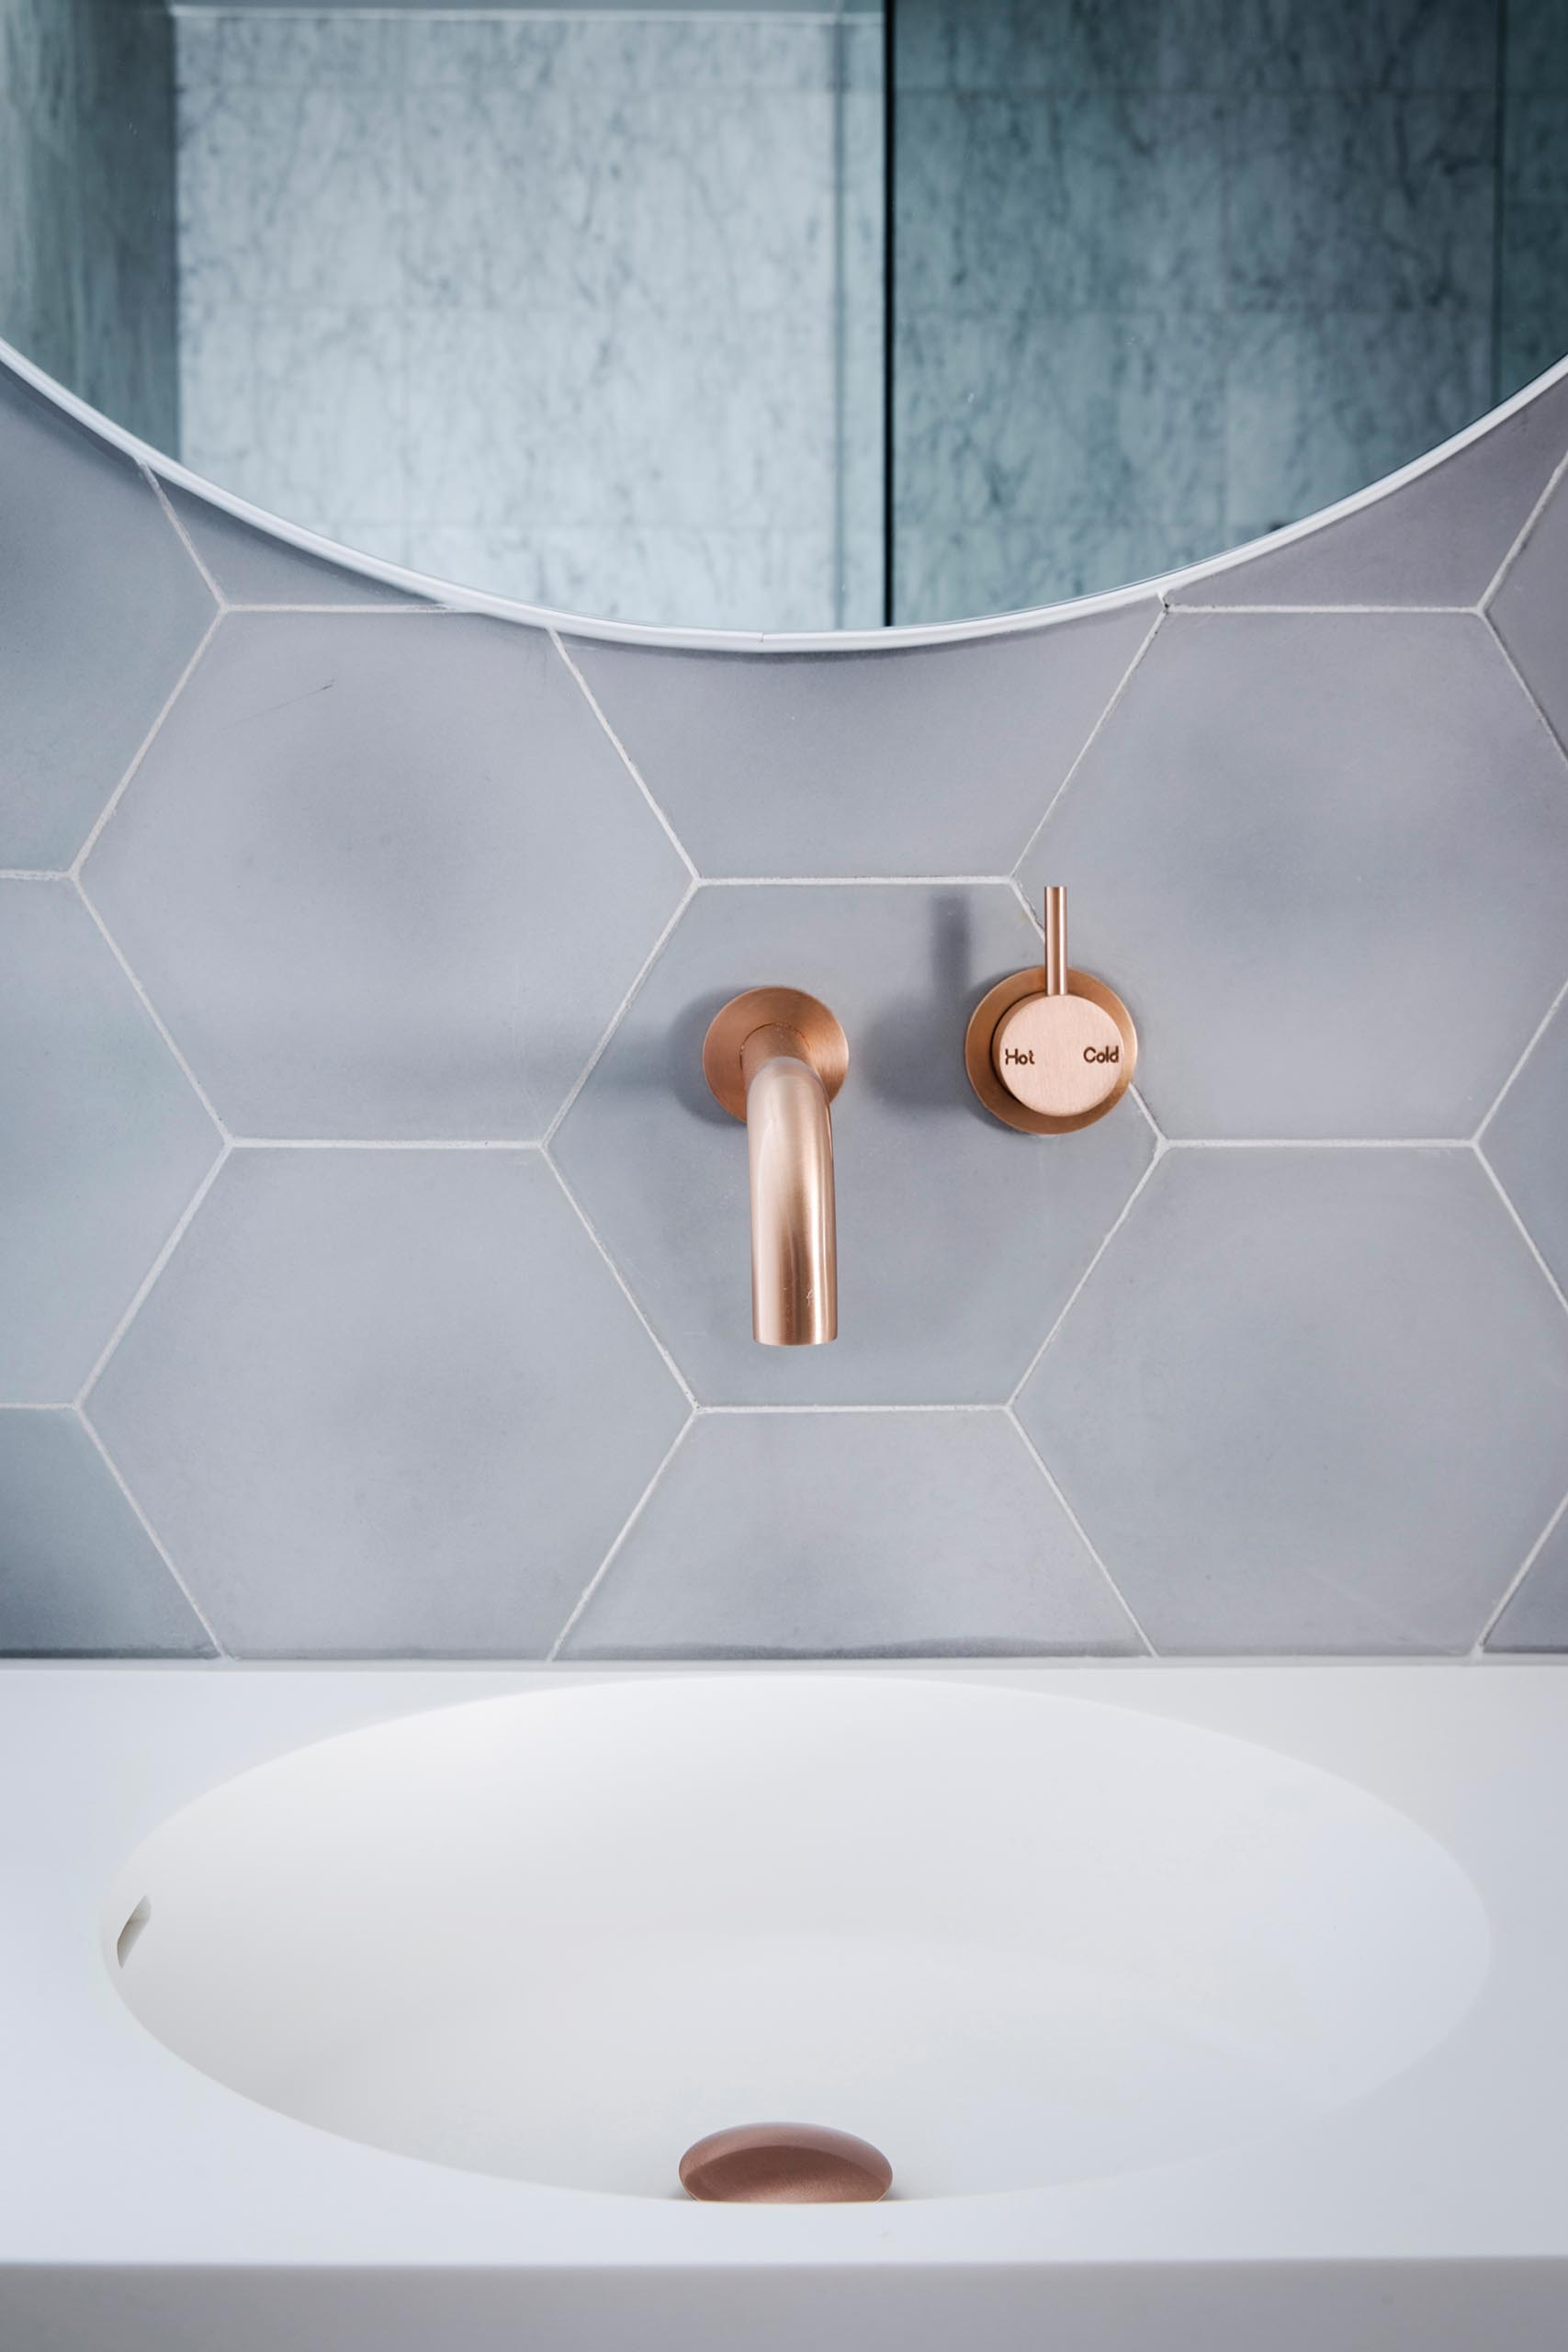 Hexagonal grey tiles with thin white grout provide a backdrop for the brushed rose gold faucet and round mirrors.